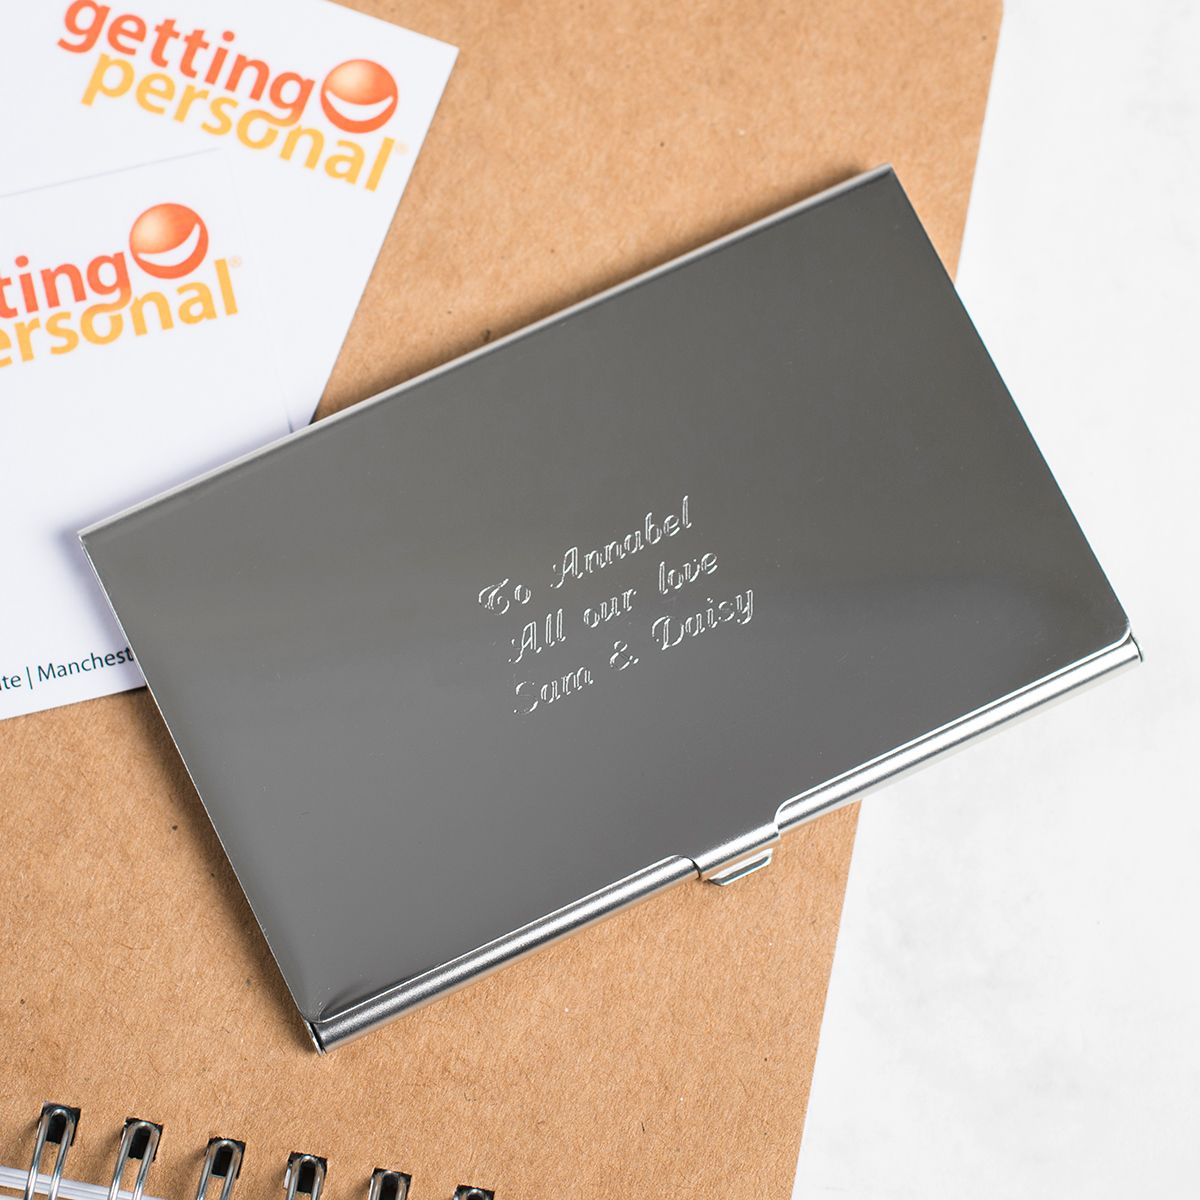 Engraved Business Card Holder Personalised Gifts For Him Business Card Holders Gifts For Him